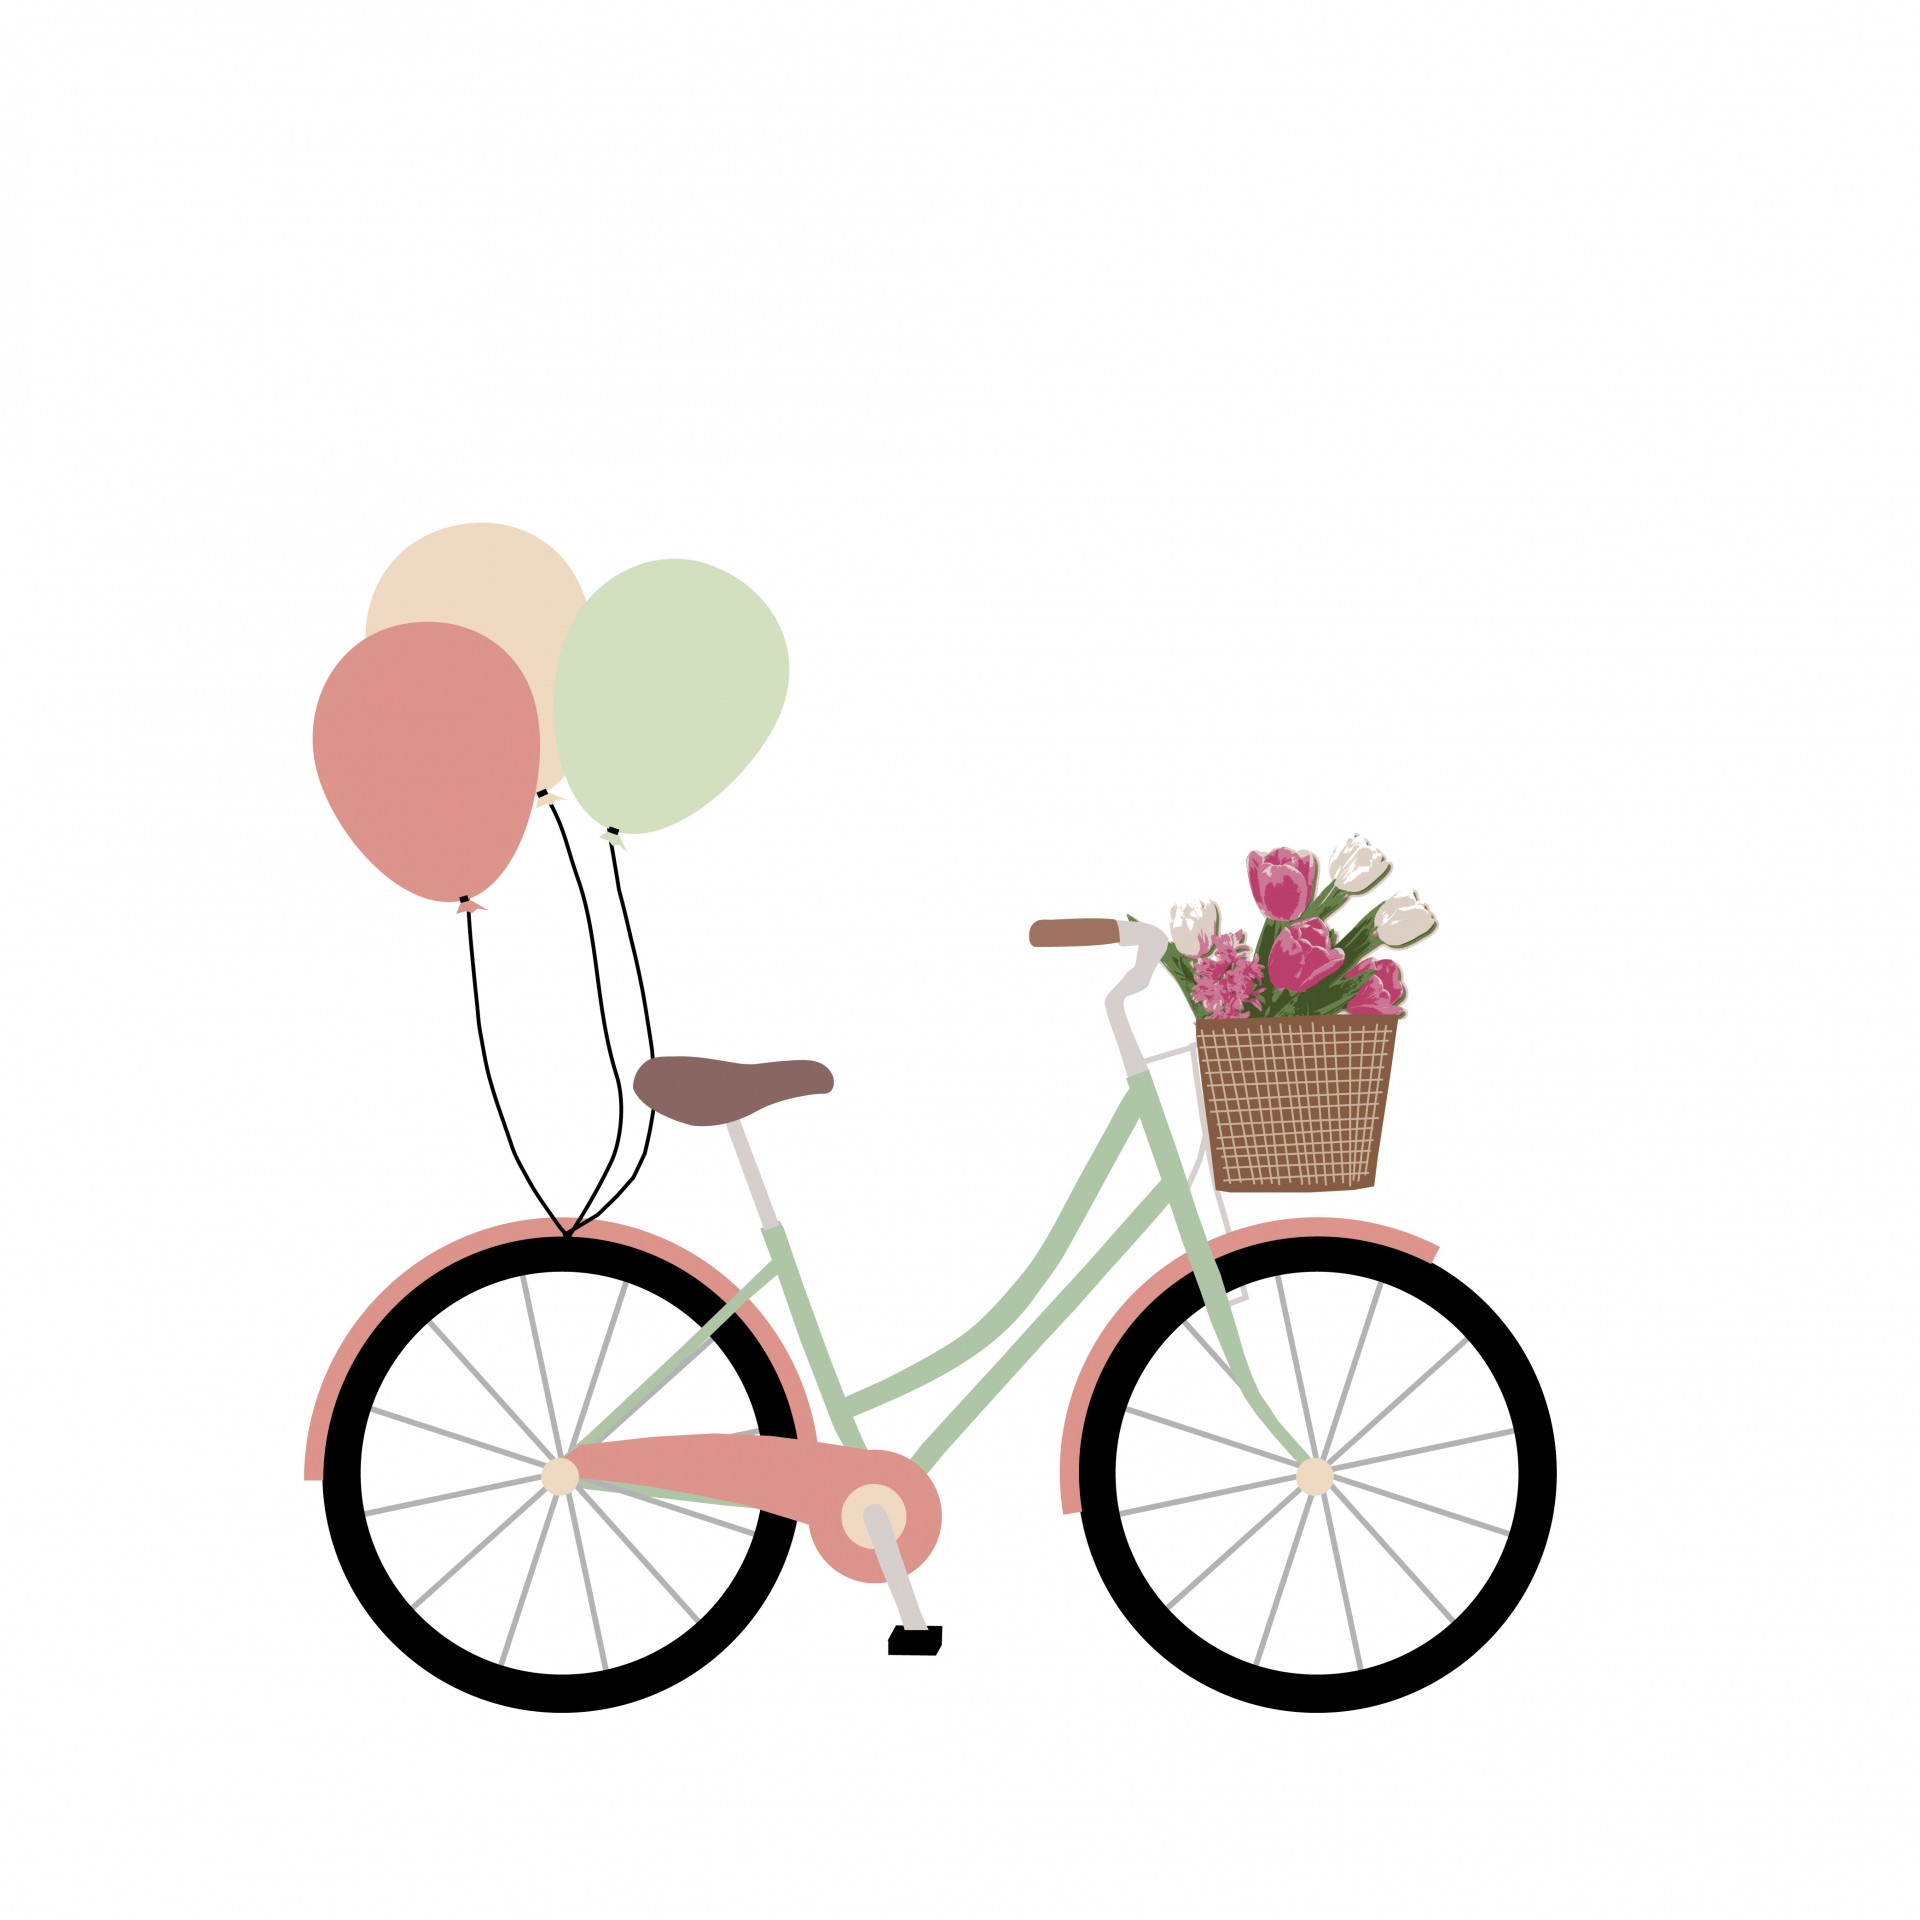 1920x1920 Kids Riding Bikes Clipart Free Images